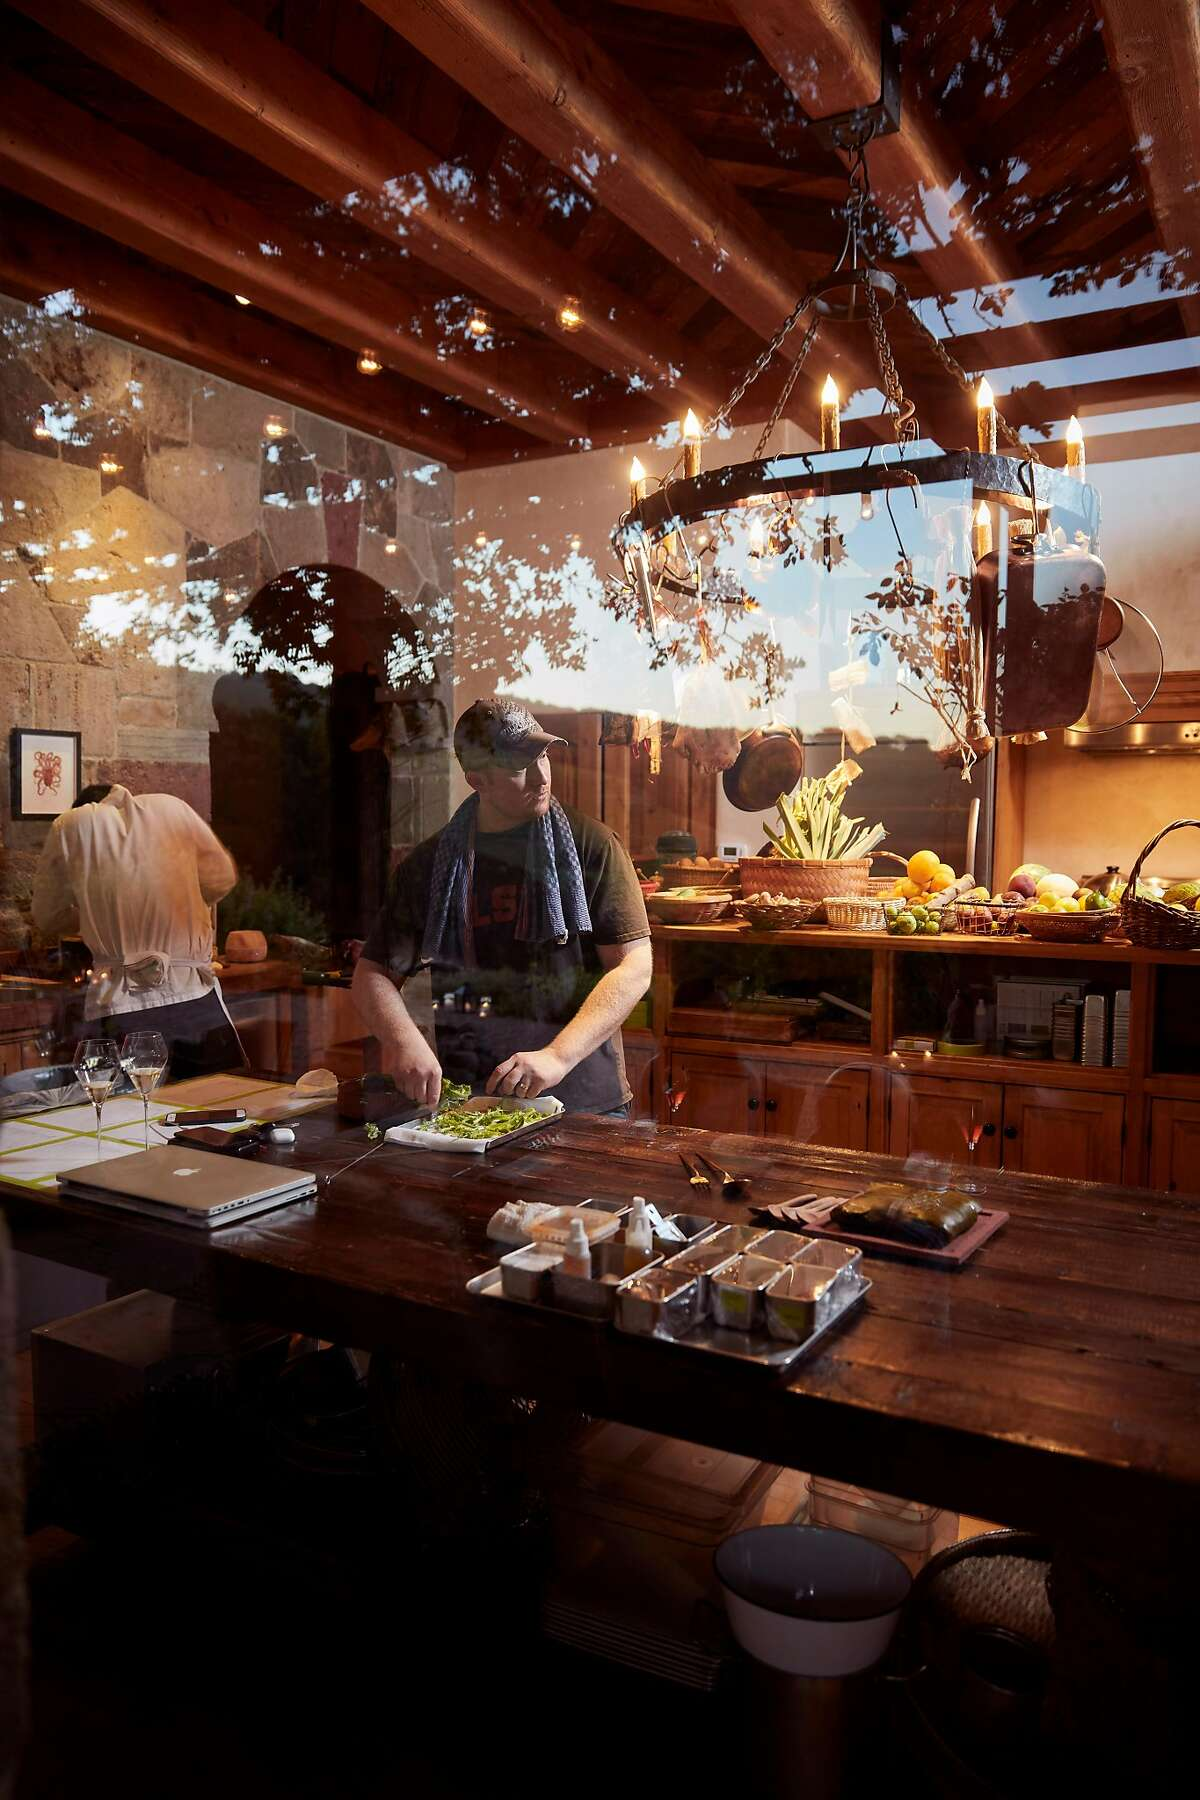 SONOMA, CALIF - JULY 10, 2017: Josh Skenes private dinner at his Sonoma ranch. PHOTO BY JOHN LEE COPYRIGHT 2017 JOHN LEE PICTURES